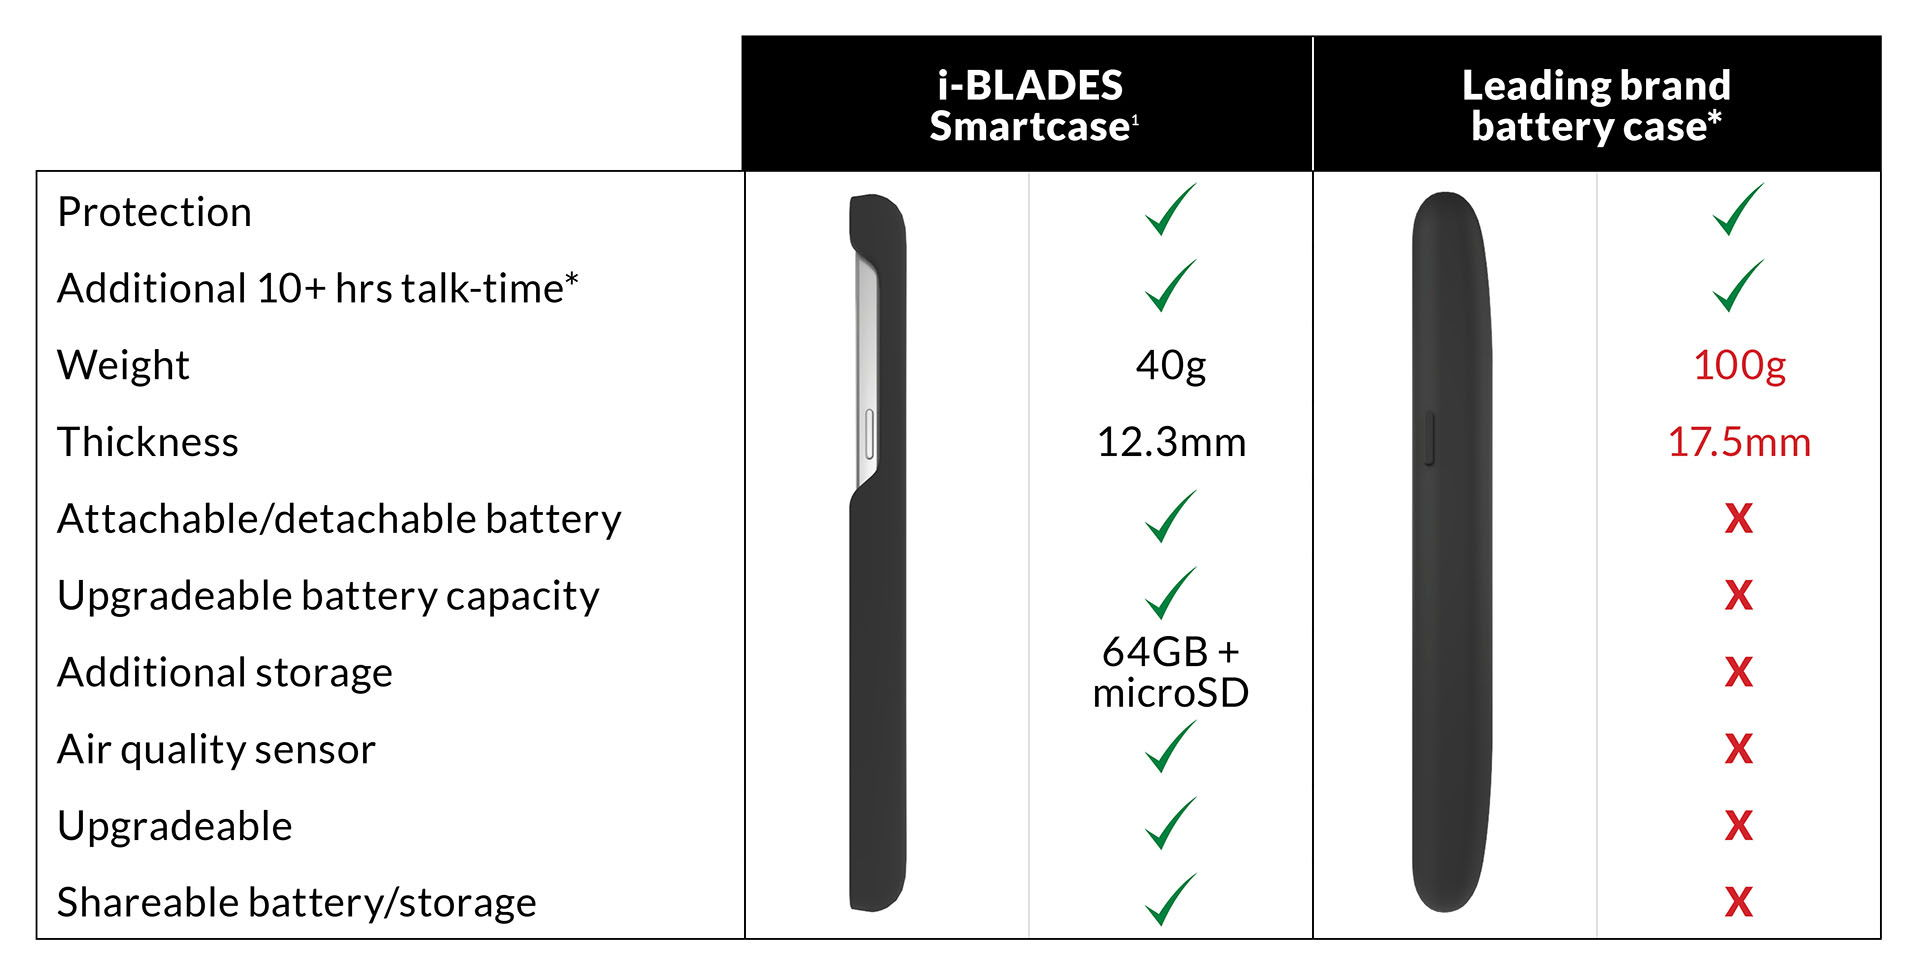 Samsung Galaxy S7 edge battery case ultimate charging case extends battery life and memory i-BLADES Smartcase